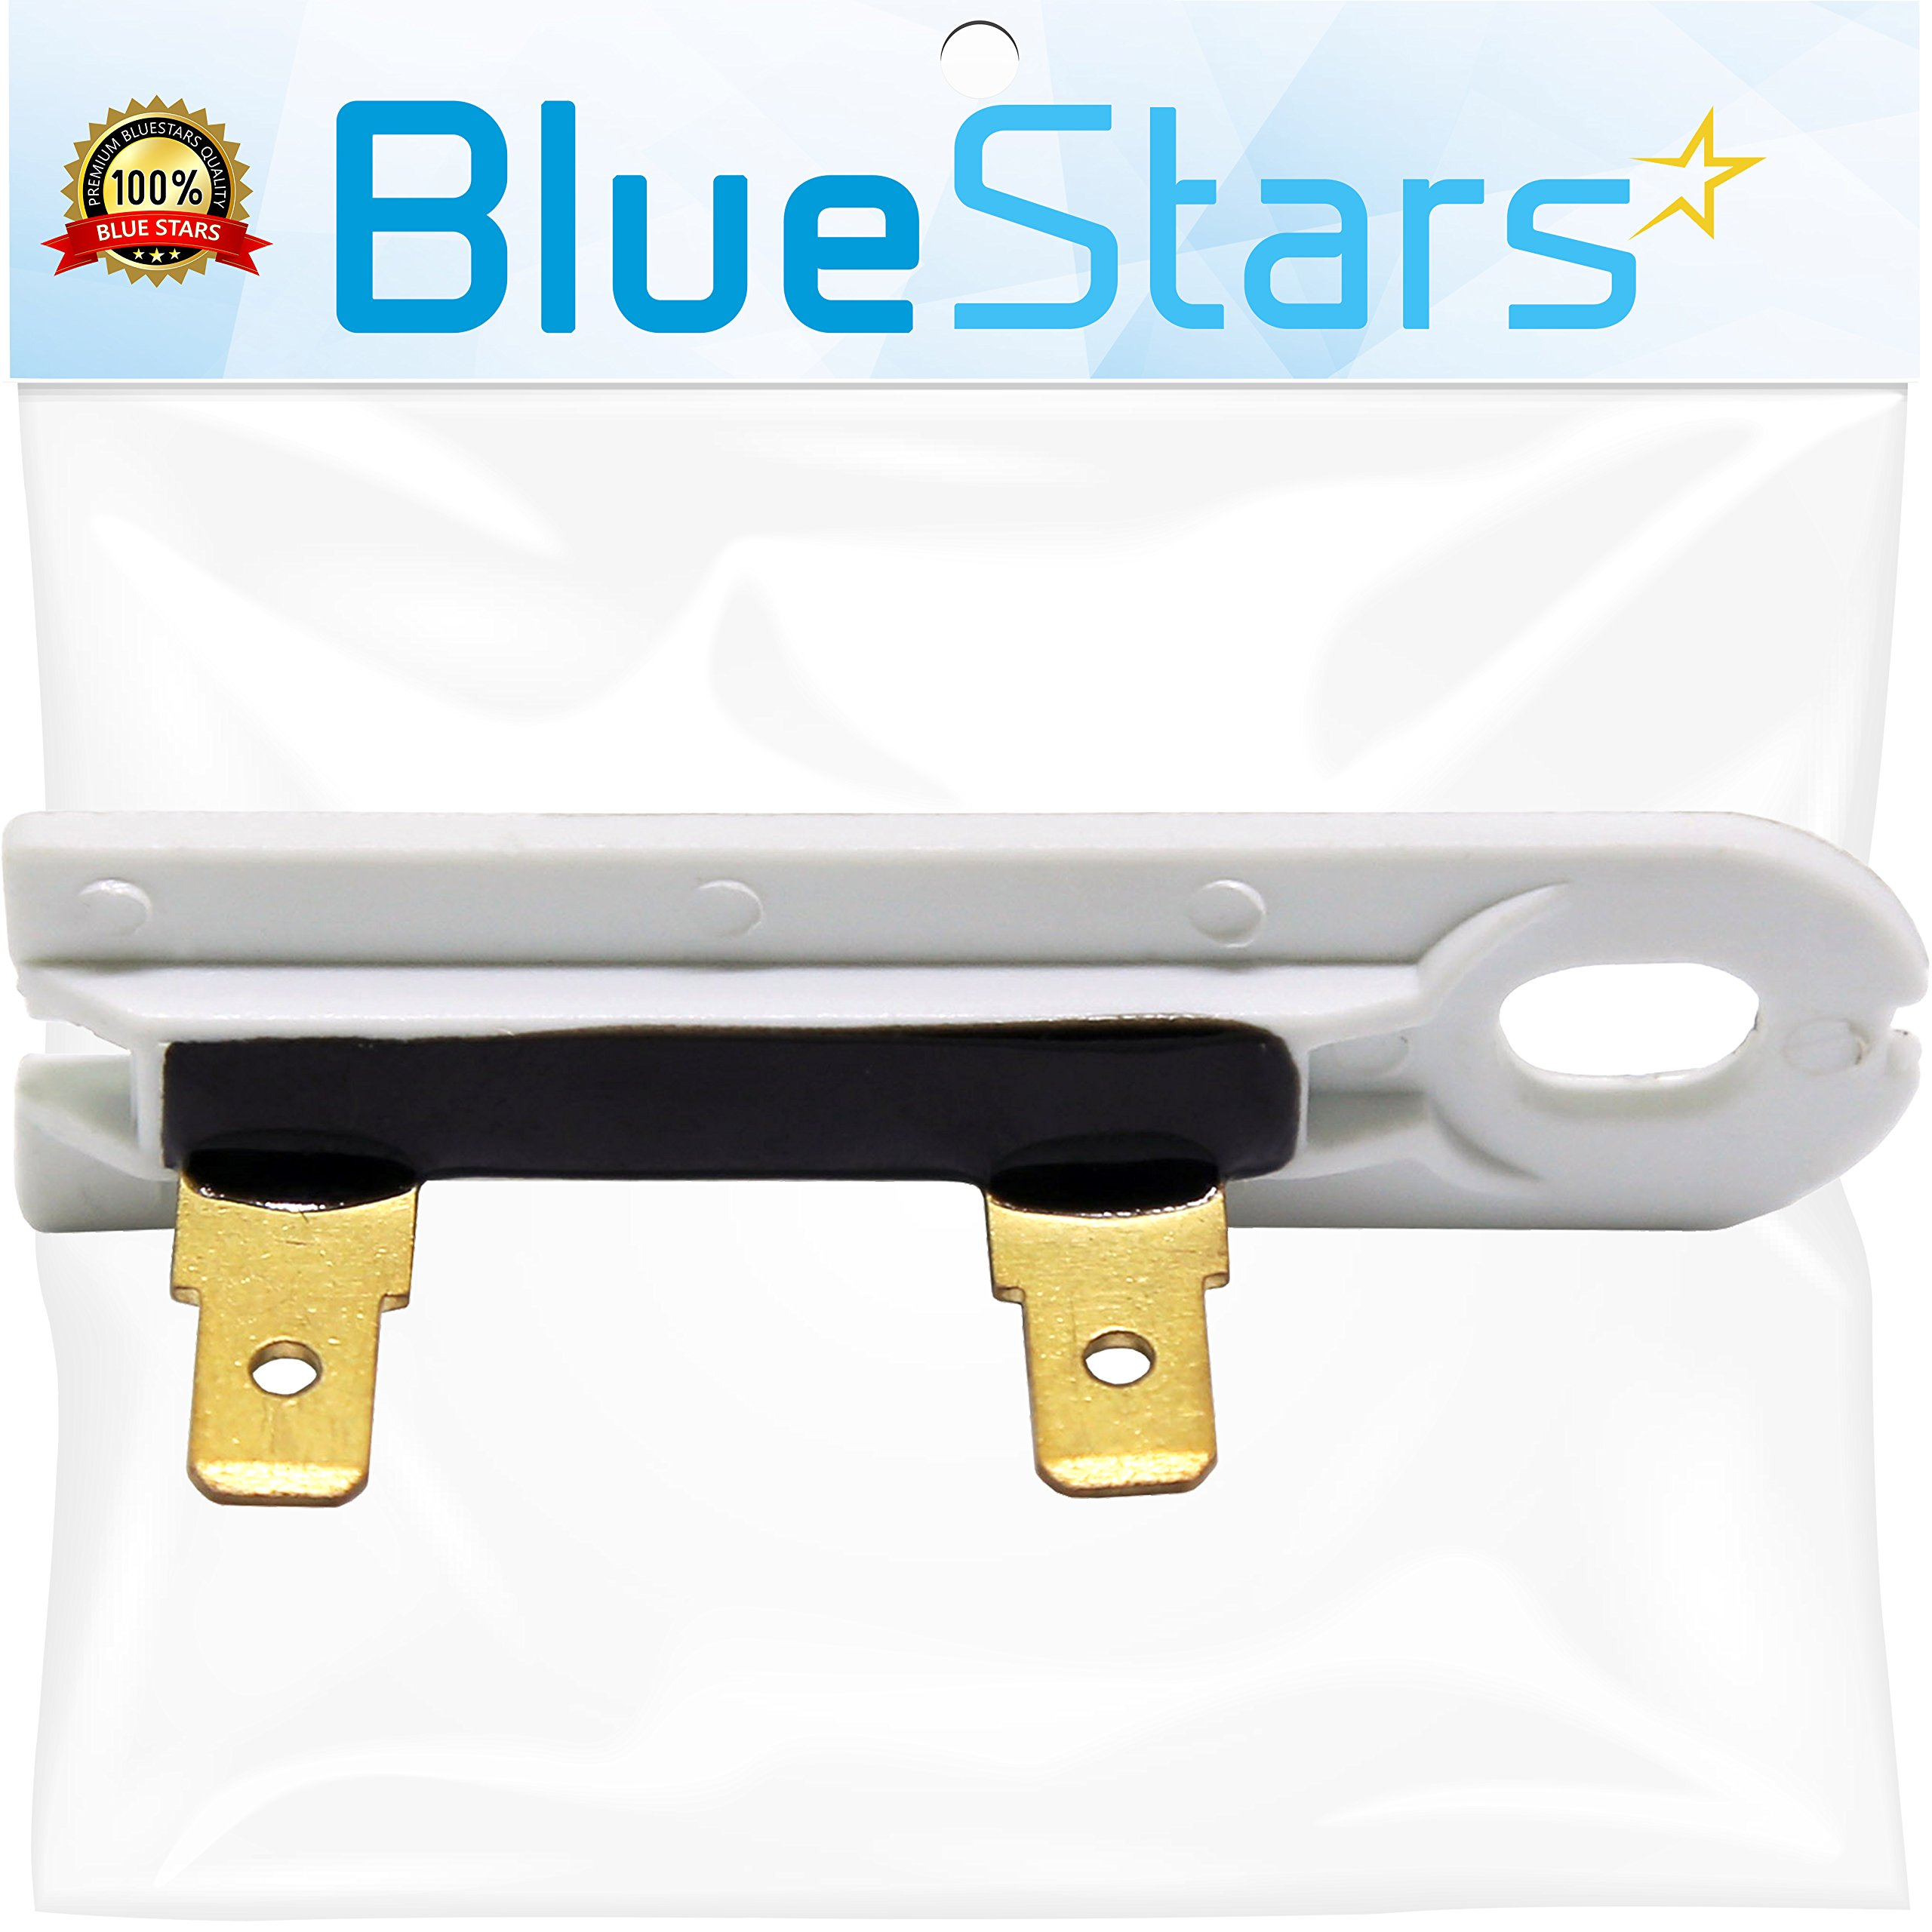 3392519 Dryer Thermal Fuse Replacement part by Blue Stars - Exact Fit for Whirlpool & Kenmore Dryer - Replaces 3388651, 694511, 80005, WP3392519VP